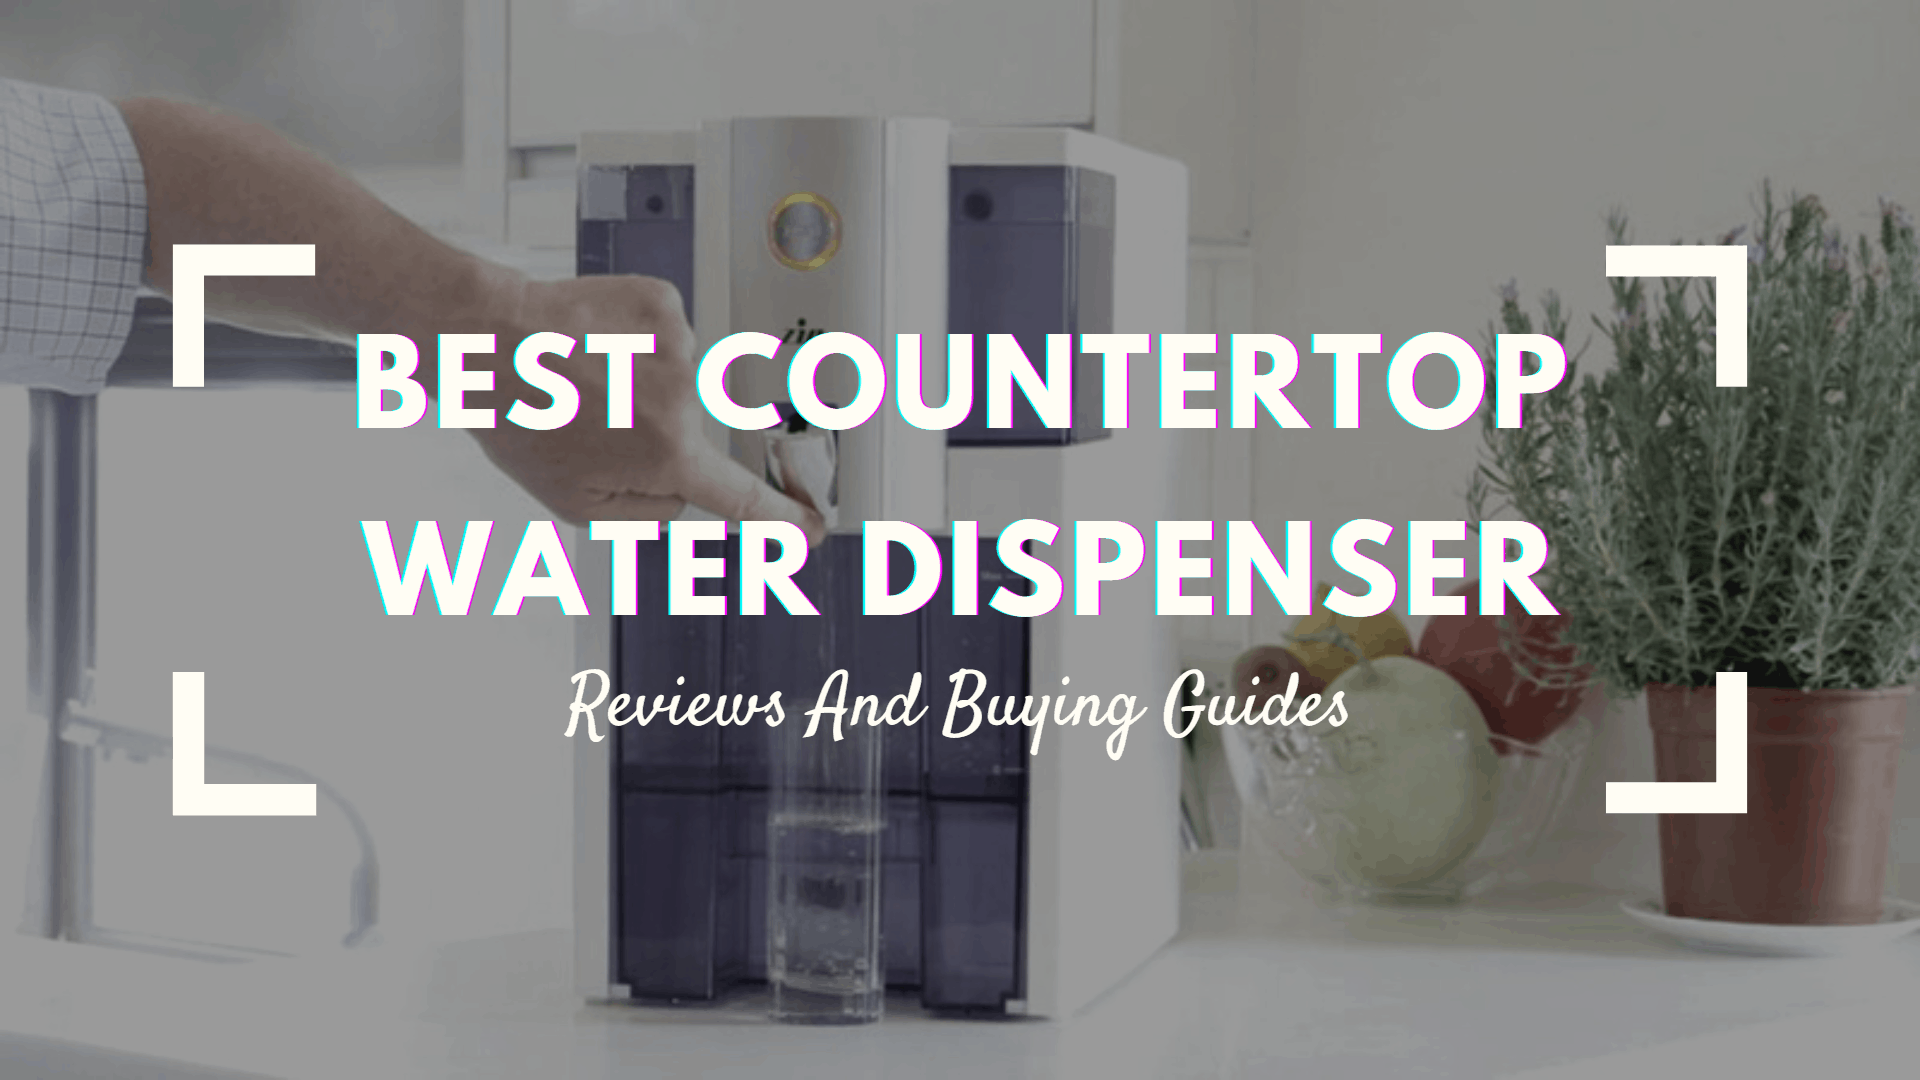 Best Countertop Water Dispenser